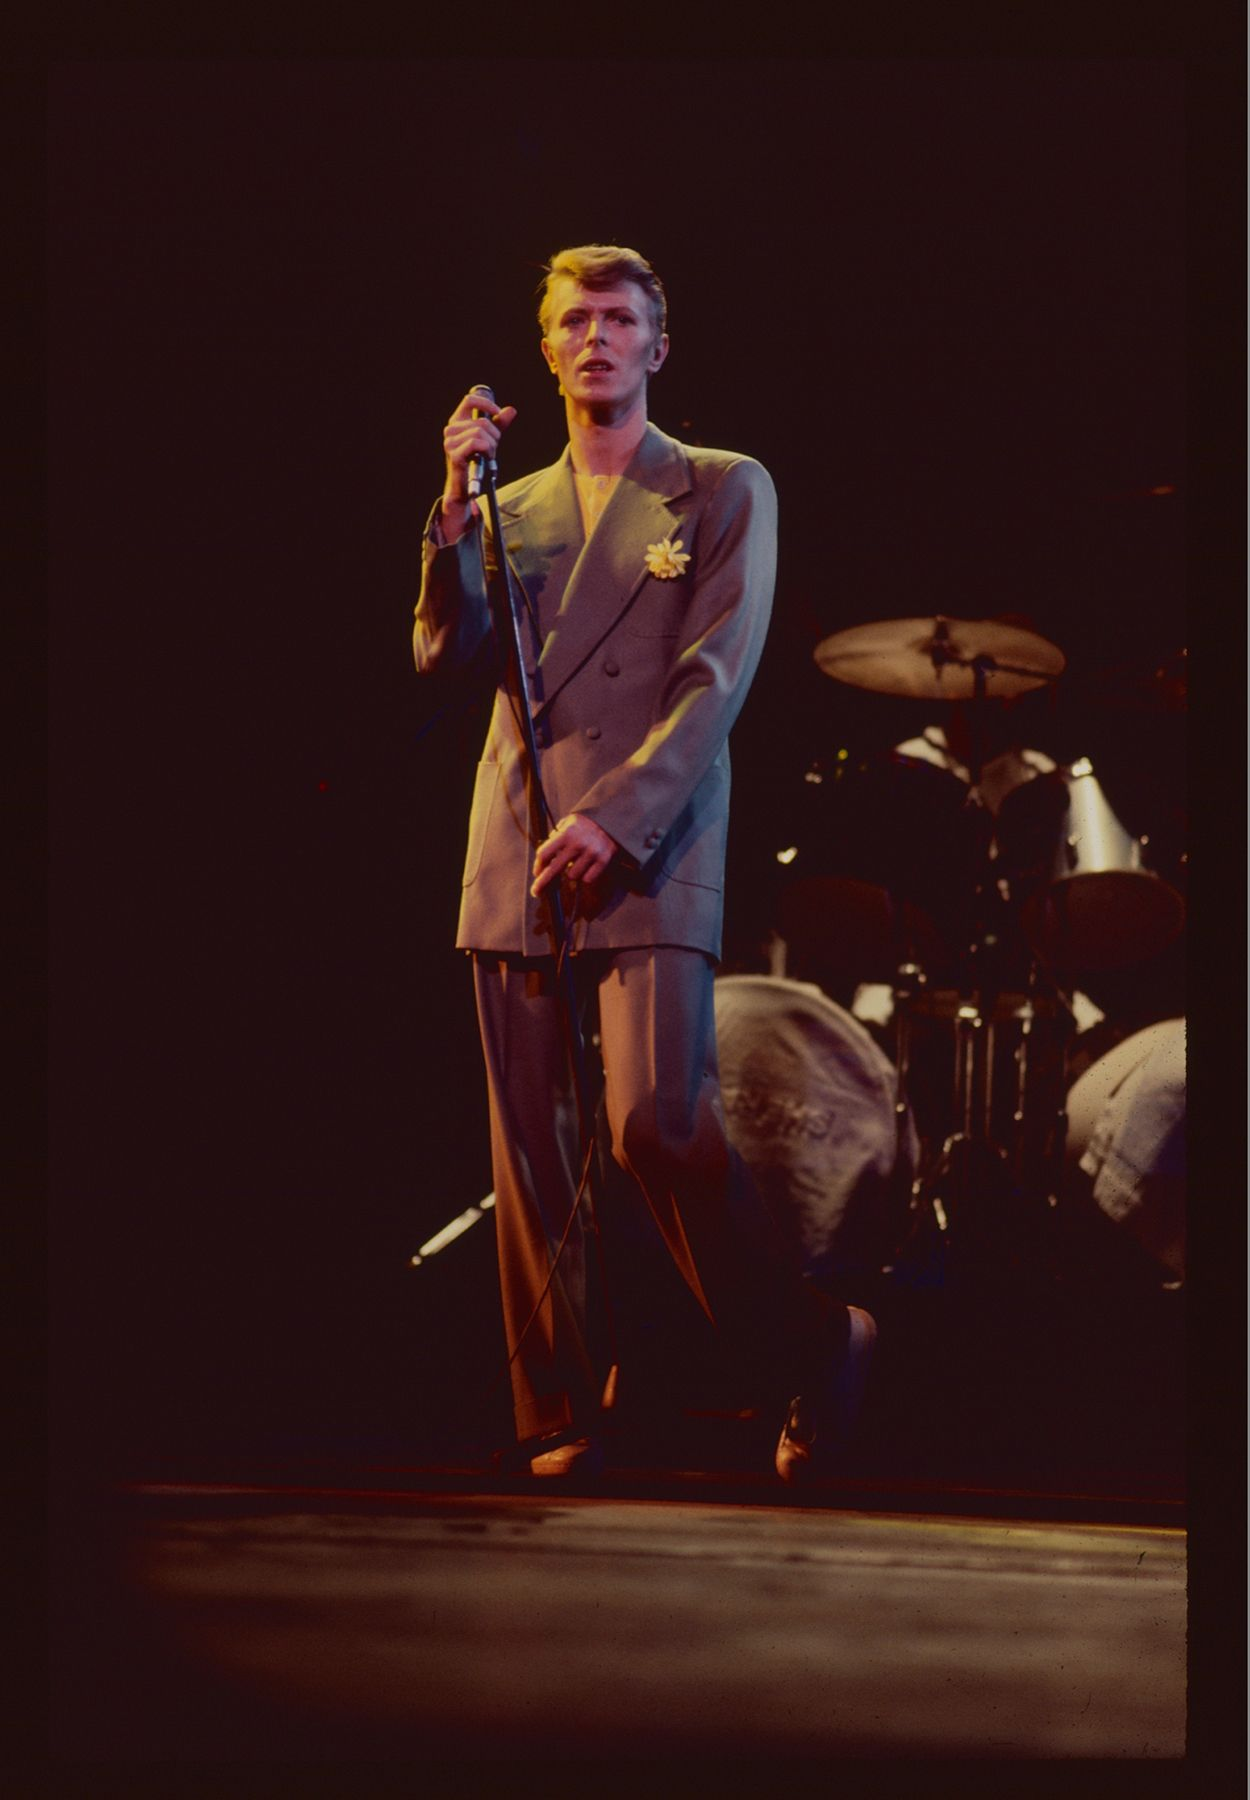 Check out never-before-seen photos of David Bowie from his 1978 Isolar II Tour stop in Chicago.